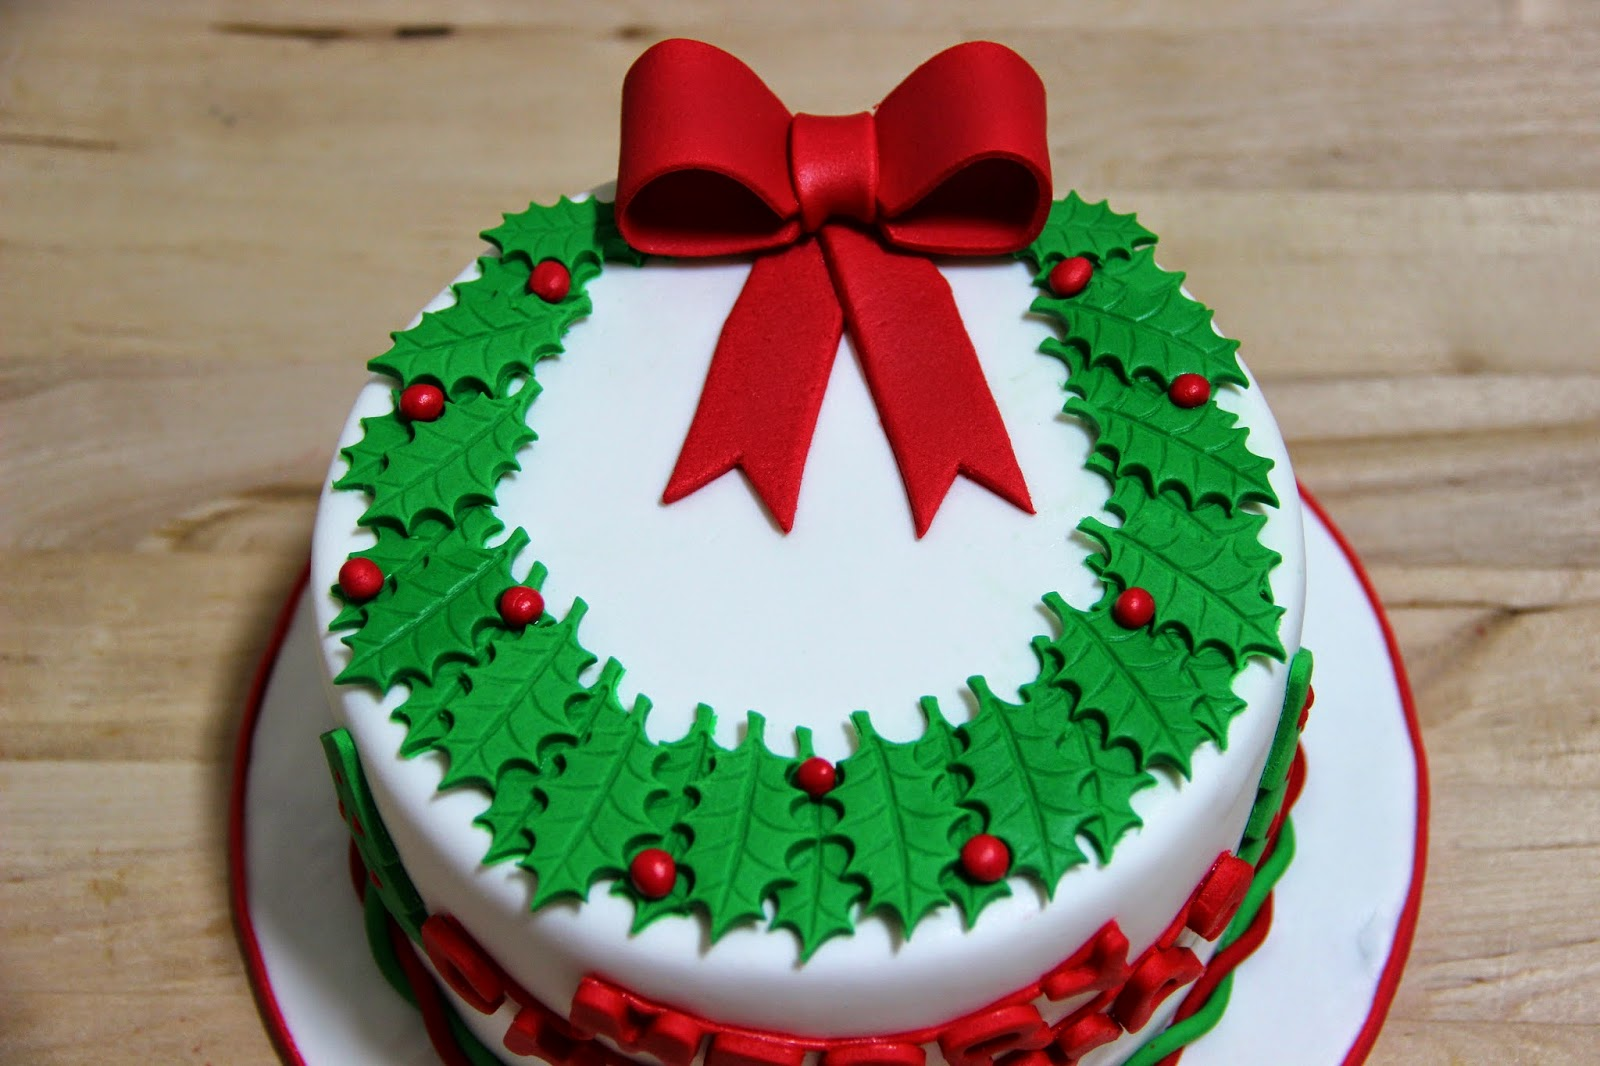 Christmas cake decoration with fruit and nuts - For Those Who Do Not Like Alcohol In Their Cakes The Dry Fruits Nuts Are Soaked In Orange Juice Baked